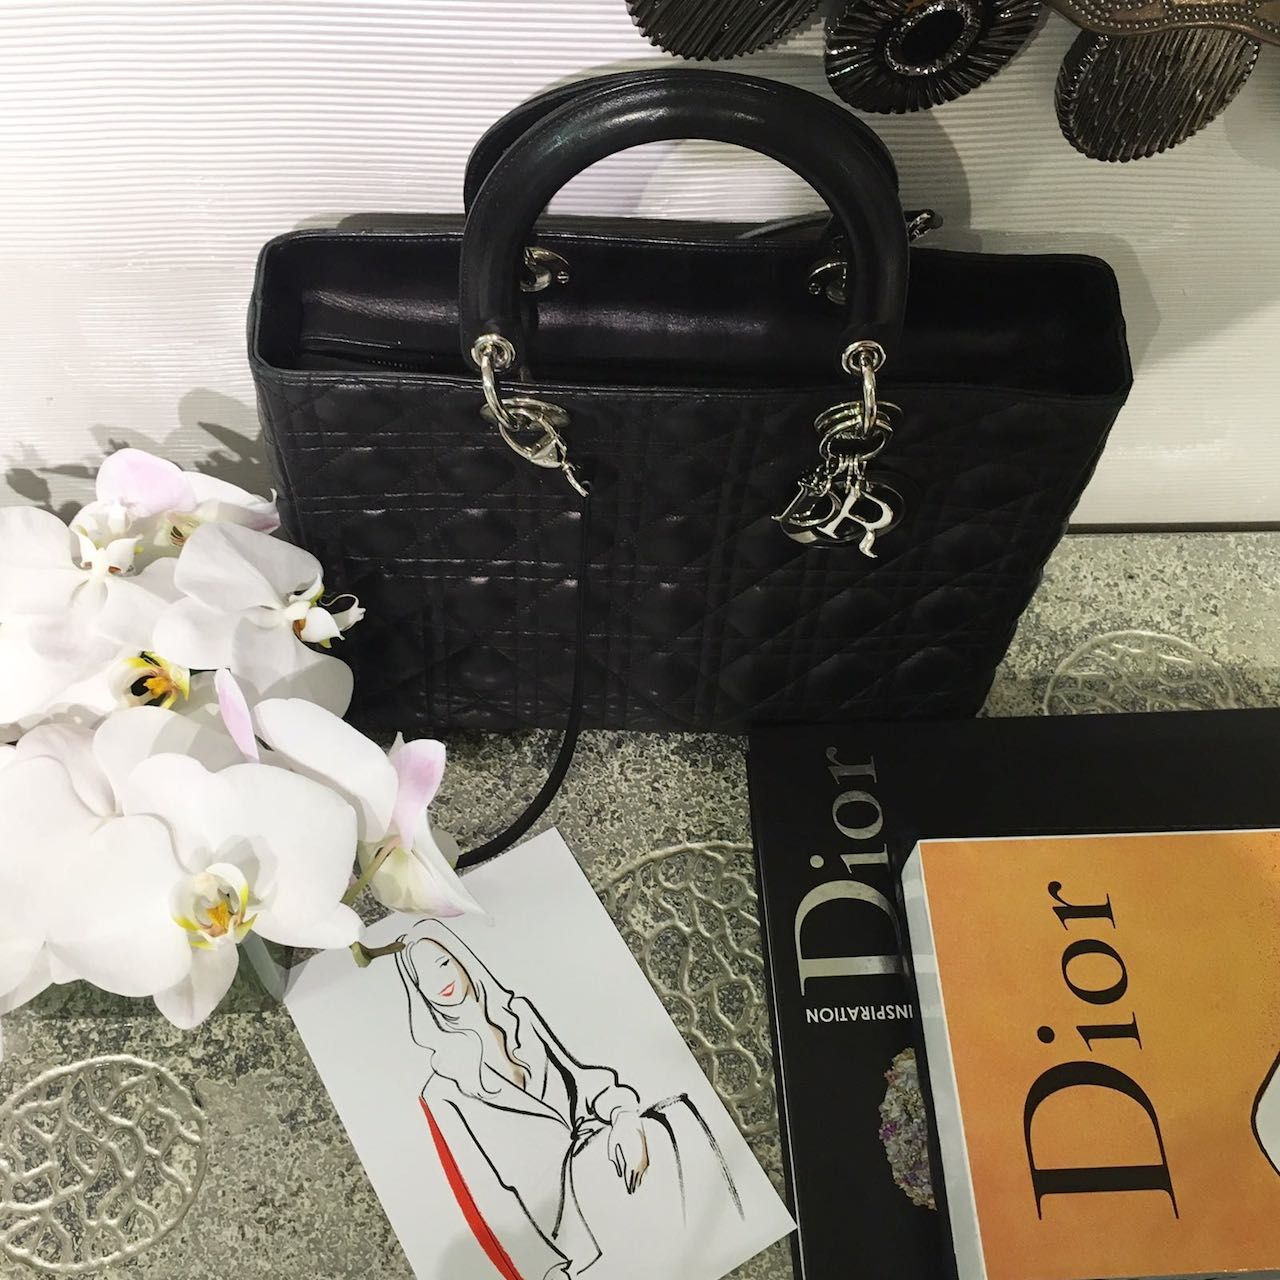 Cocktail party at Boutique Dior